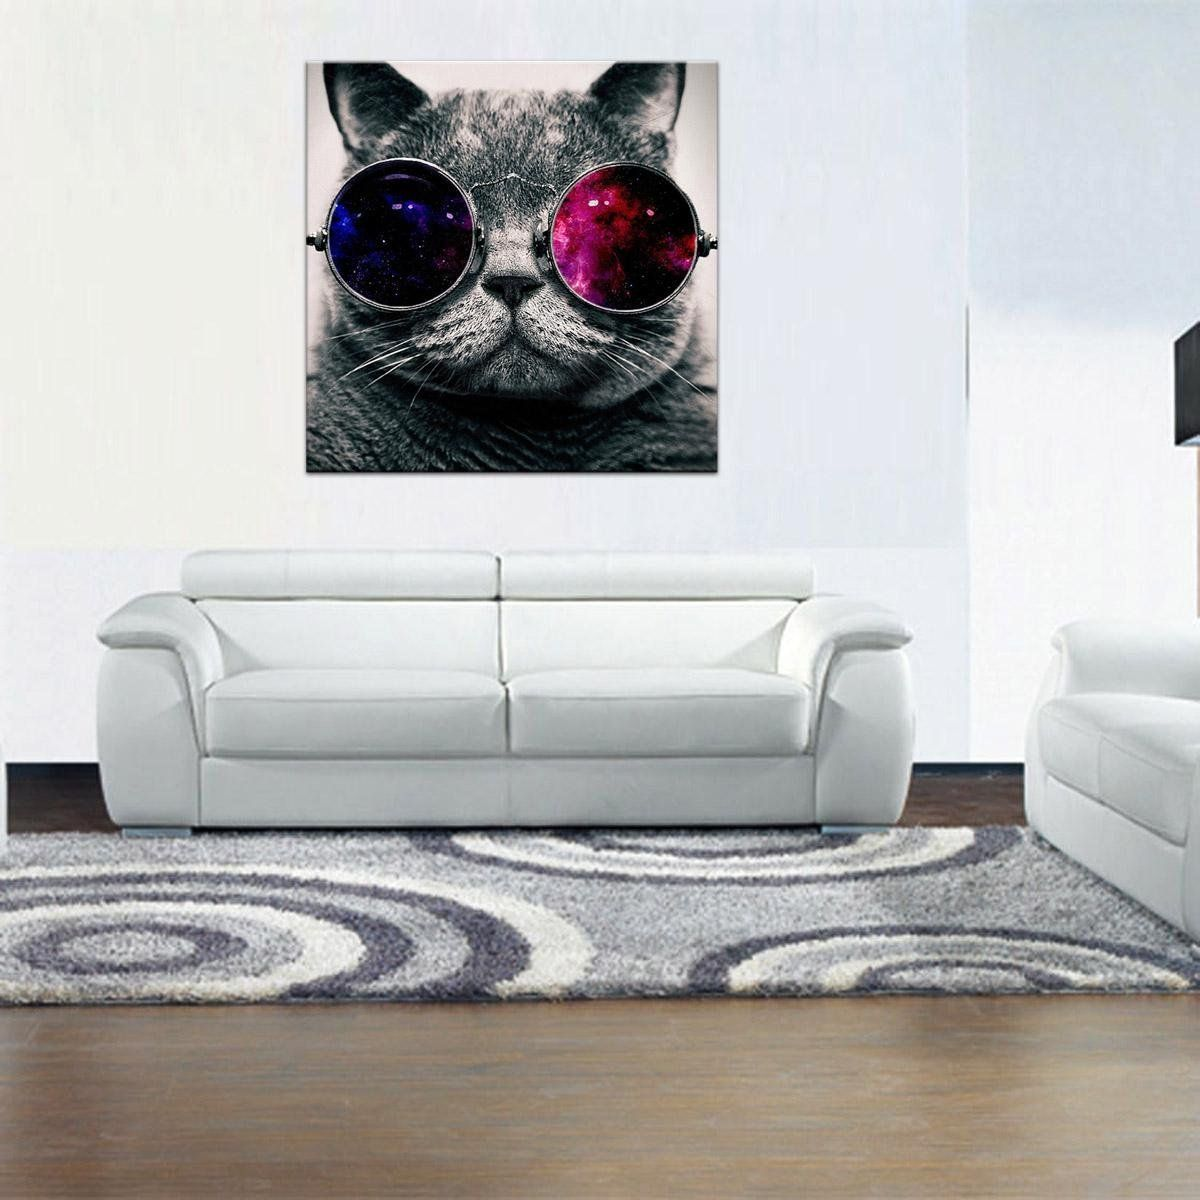 Rain queen cool cat with sunglasses oil paintings on canvas wall art